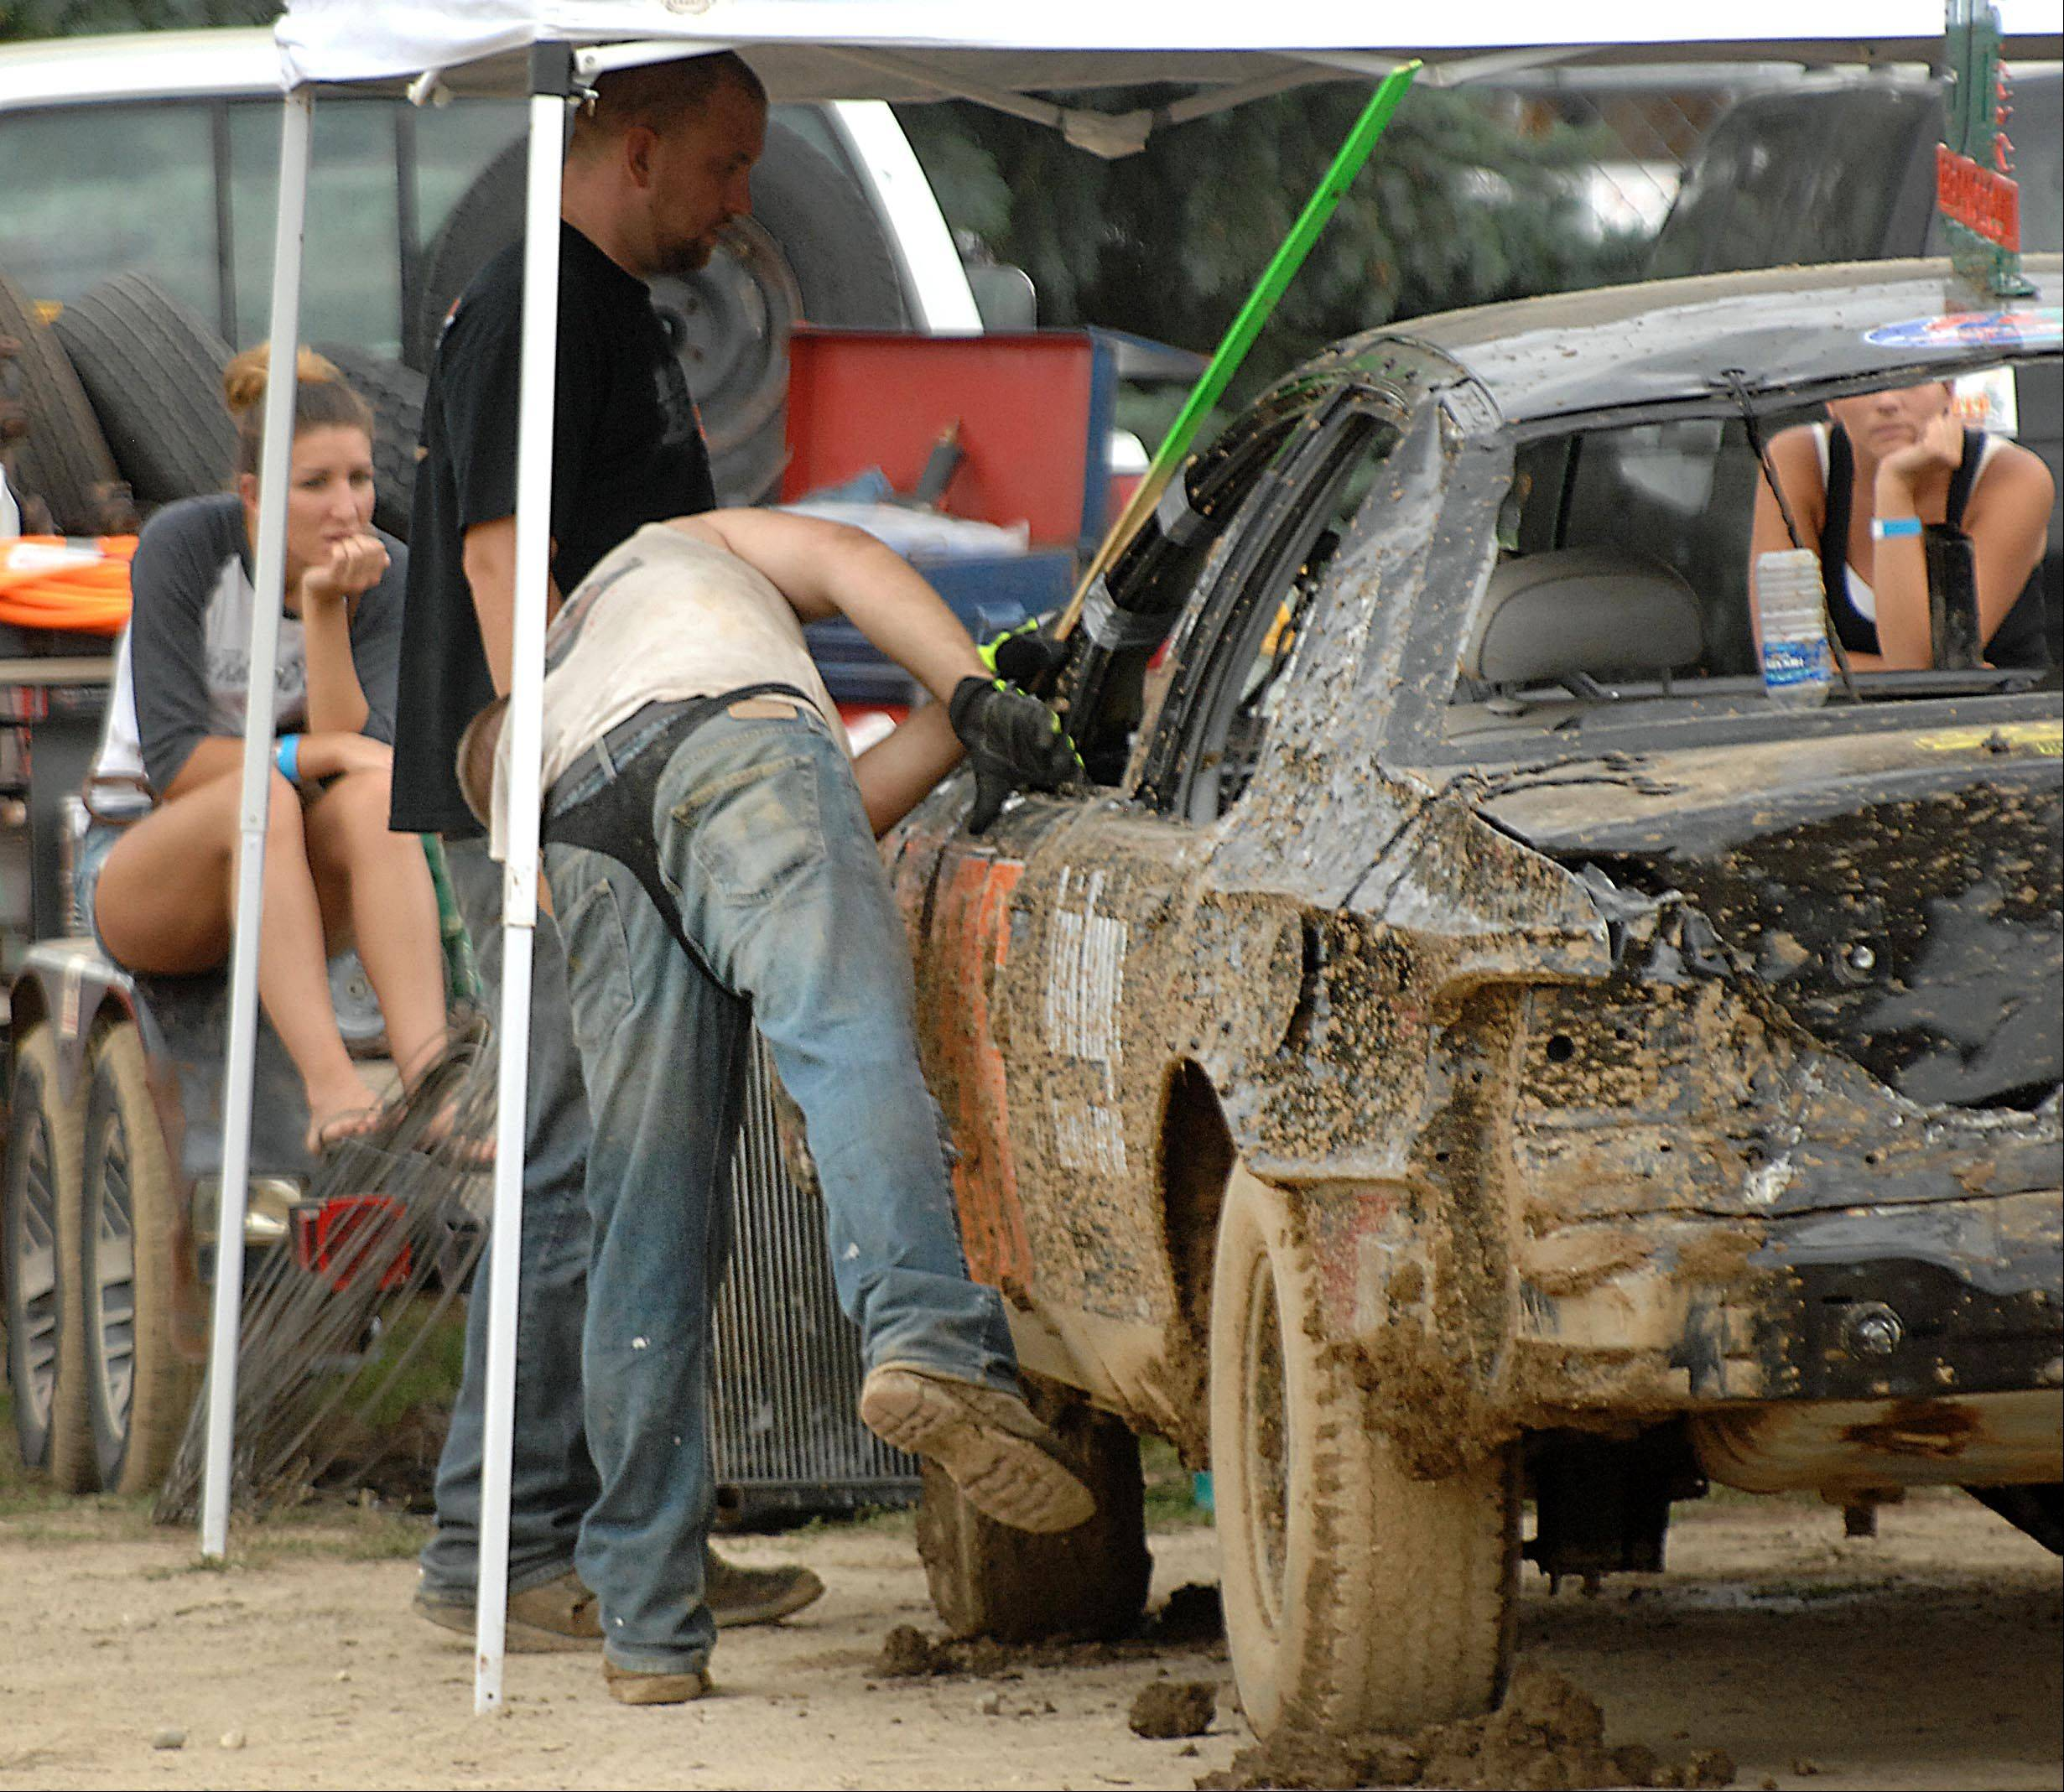 Wearing a thong over his jeans after losing a bet, Michael Brancecum of St. Charles works on his car after qualifying for the Championship round of the Demolition Derby at the Kane County Fair Sunday in St. Charles.